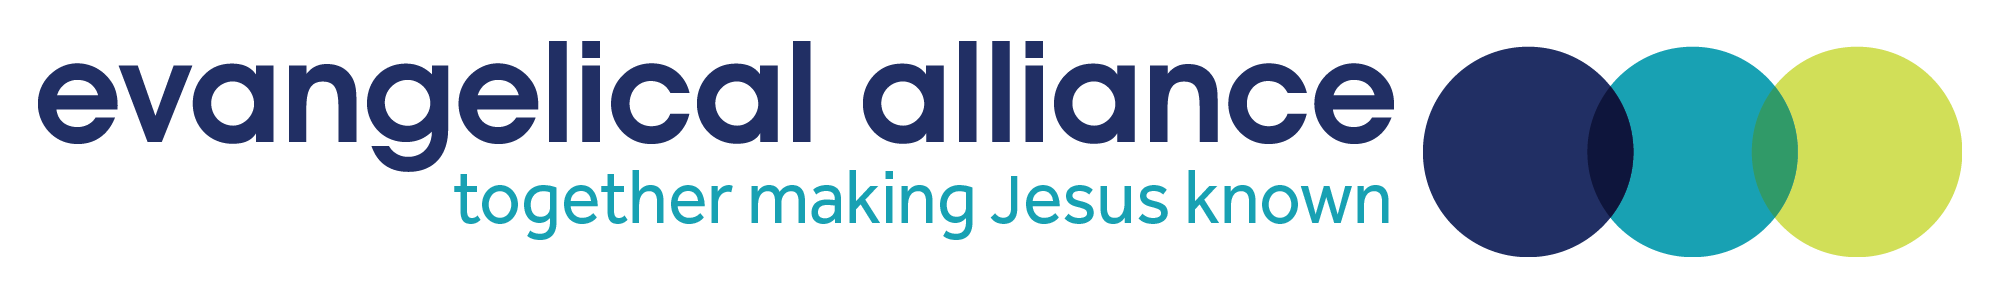 Could the next Evangelical Alliance be an Avenger?